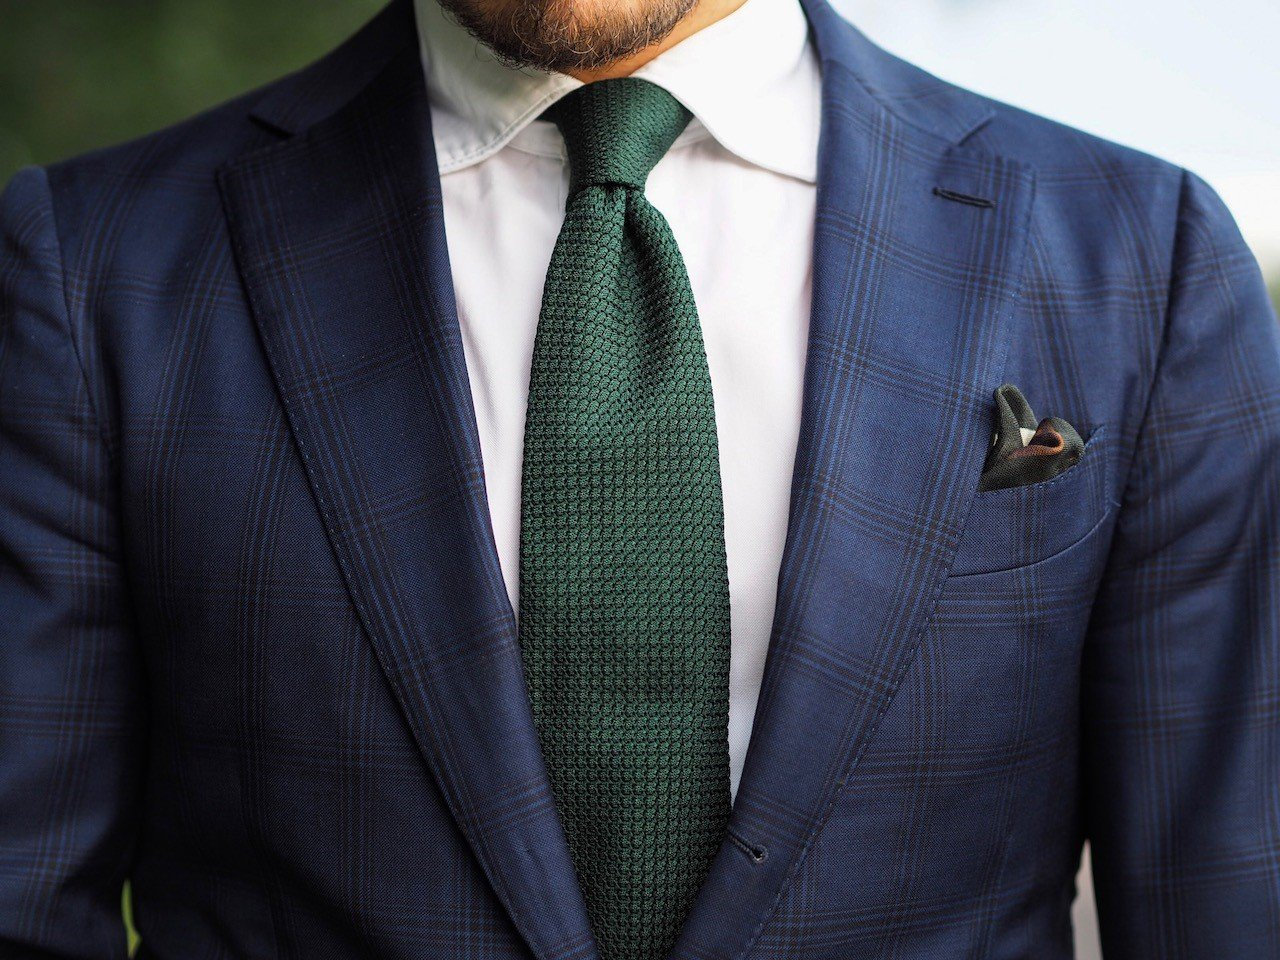 Outfit of the week - Bottle green for the fall